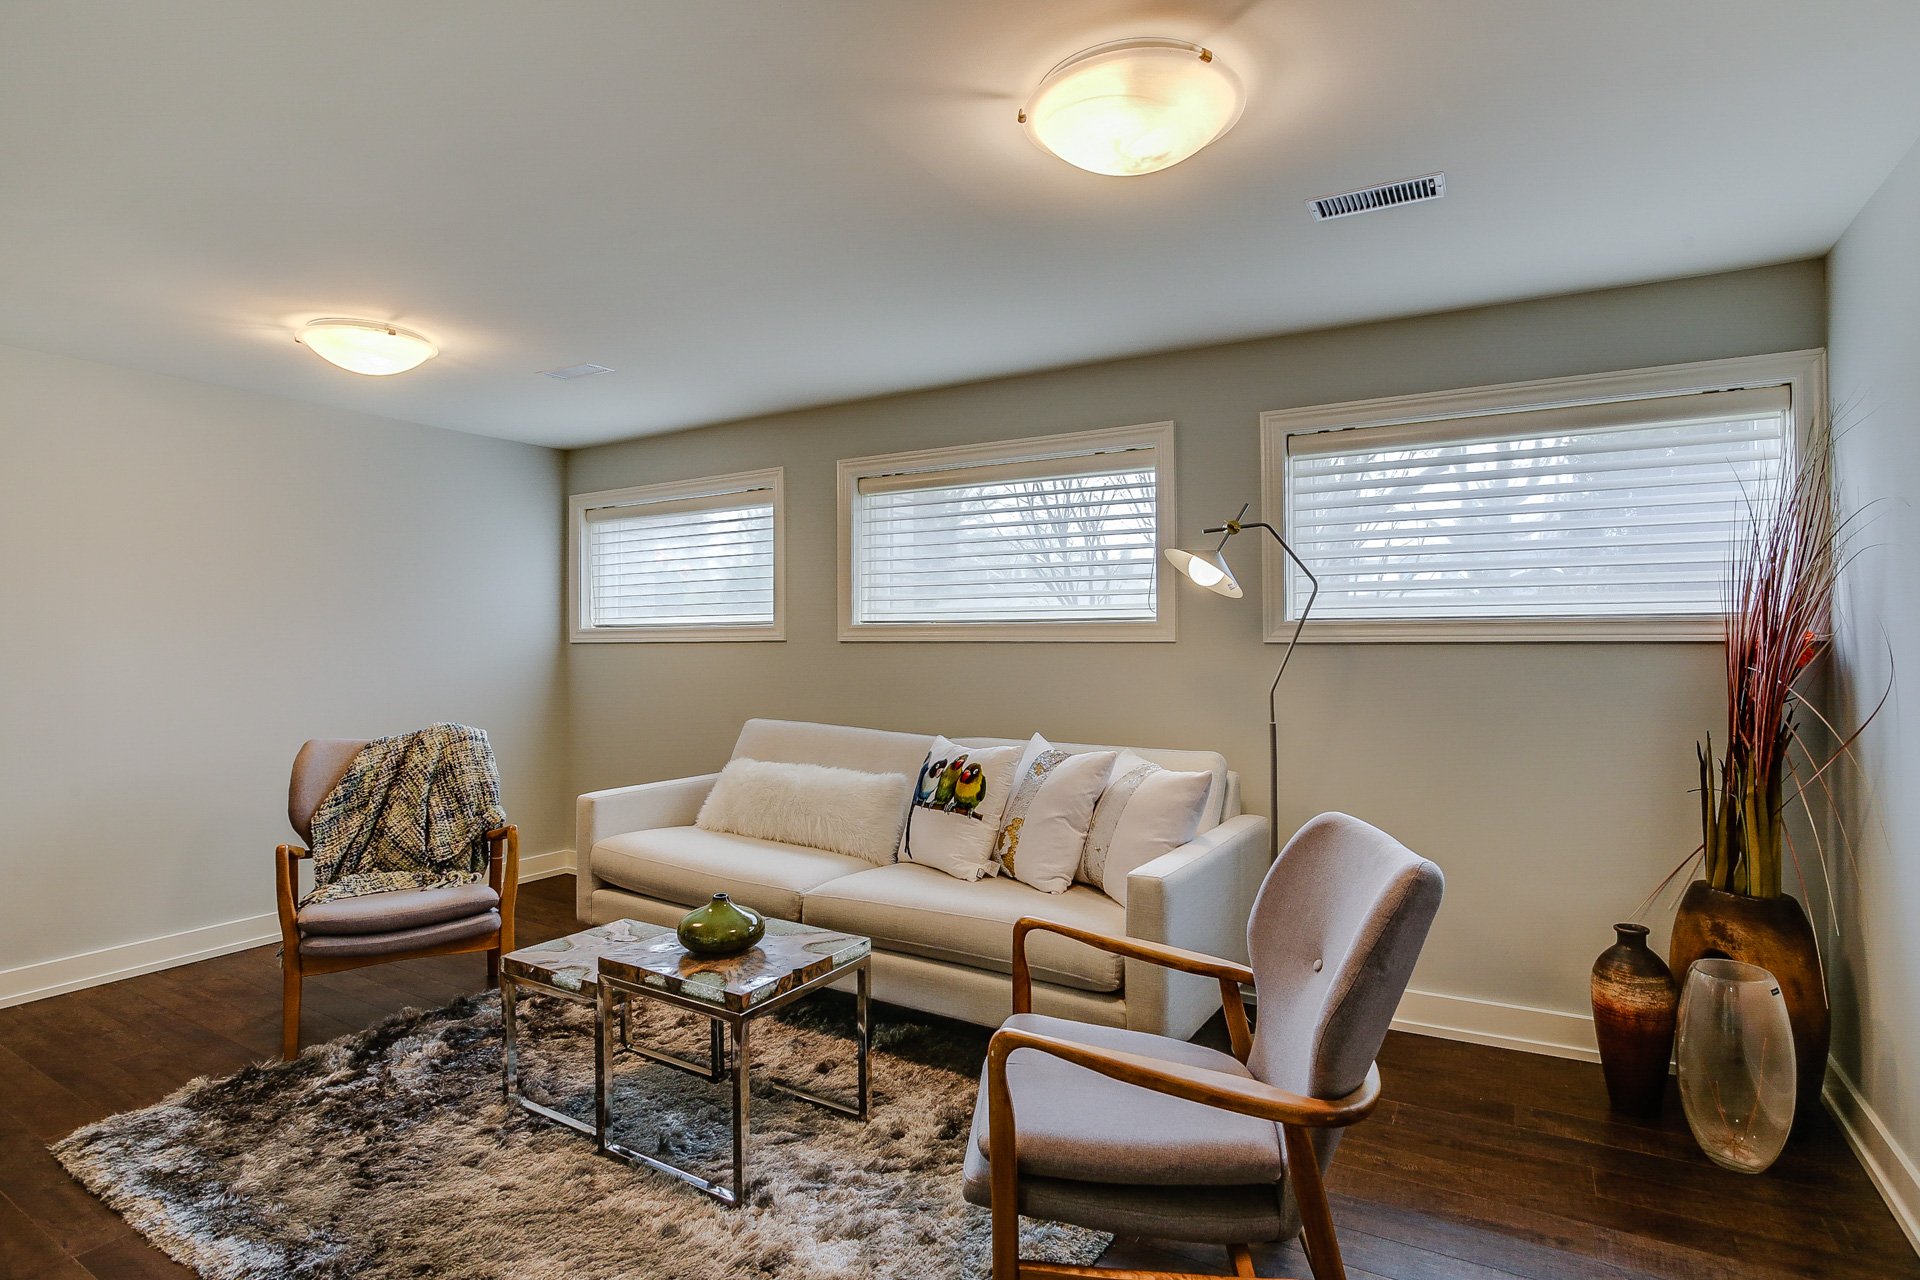 Sitting Area, 26 Boxbury, Etobicoke Home Staging